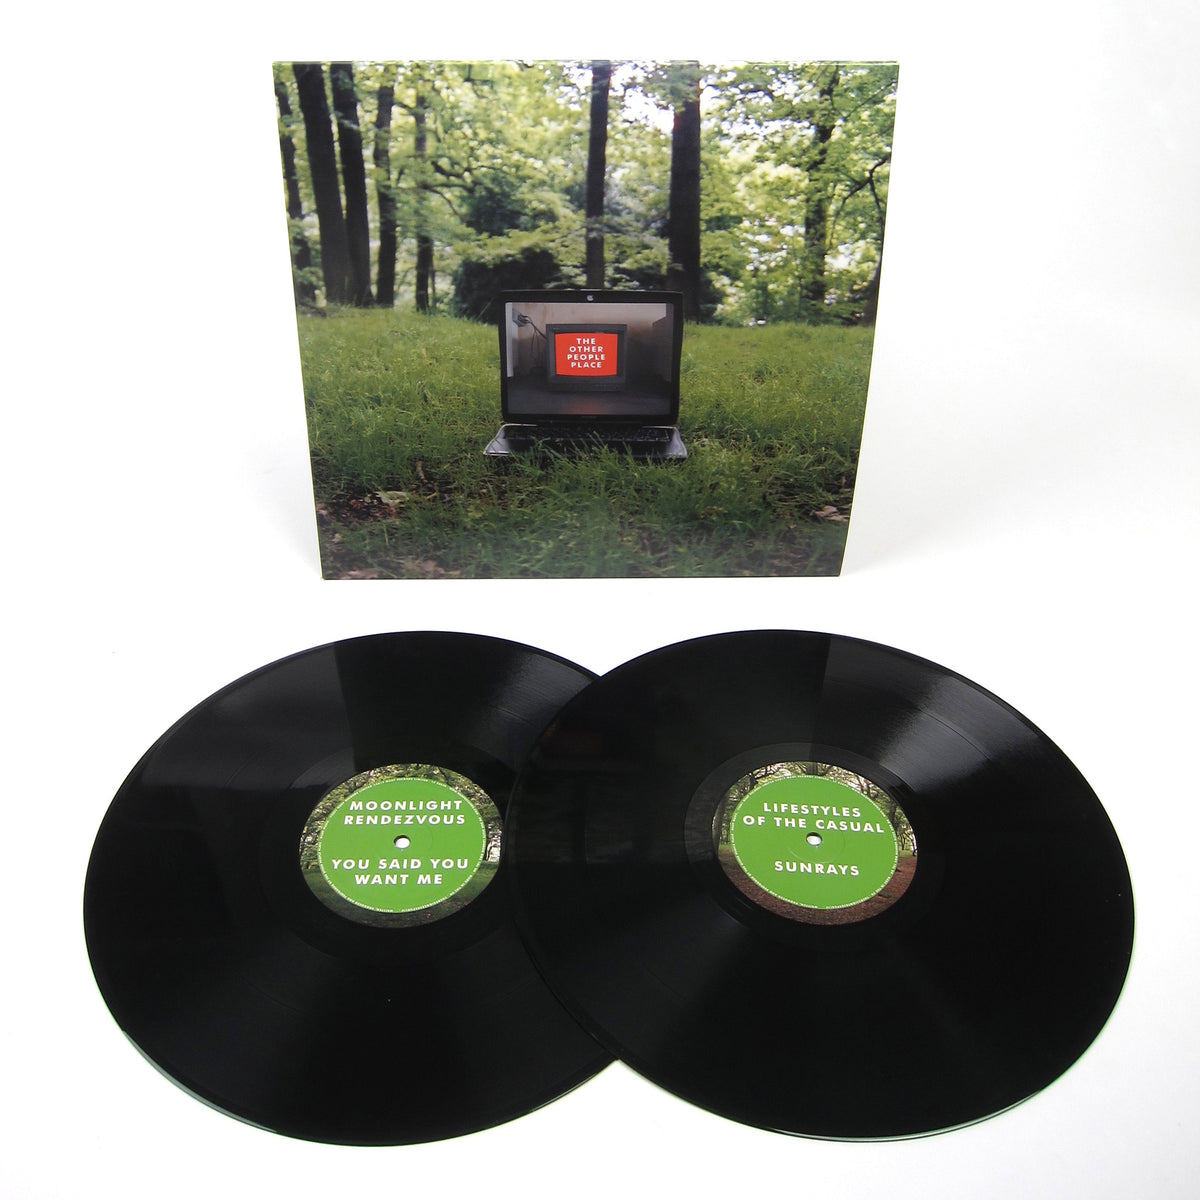 The Other People Place: Lifestyles Of The Laptop Cafe Vinyl 2LP